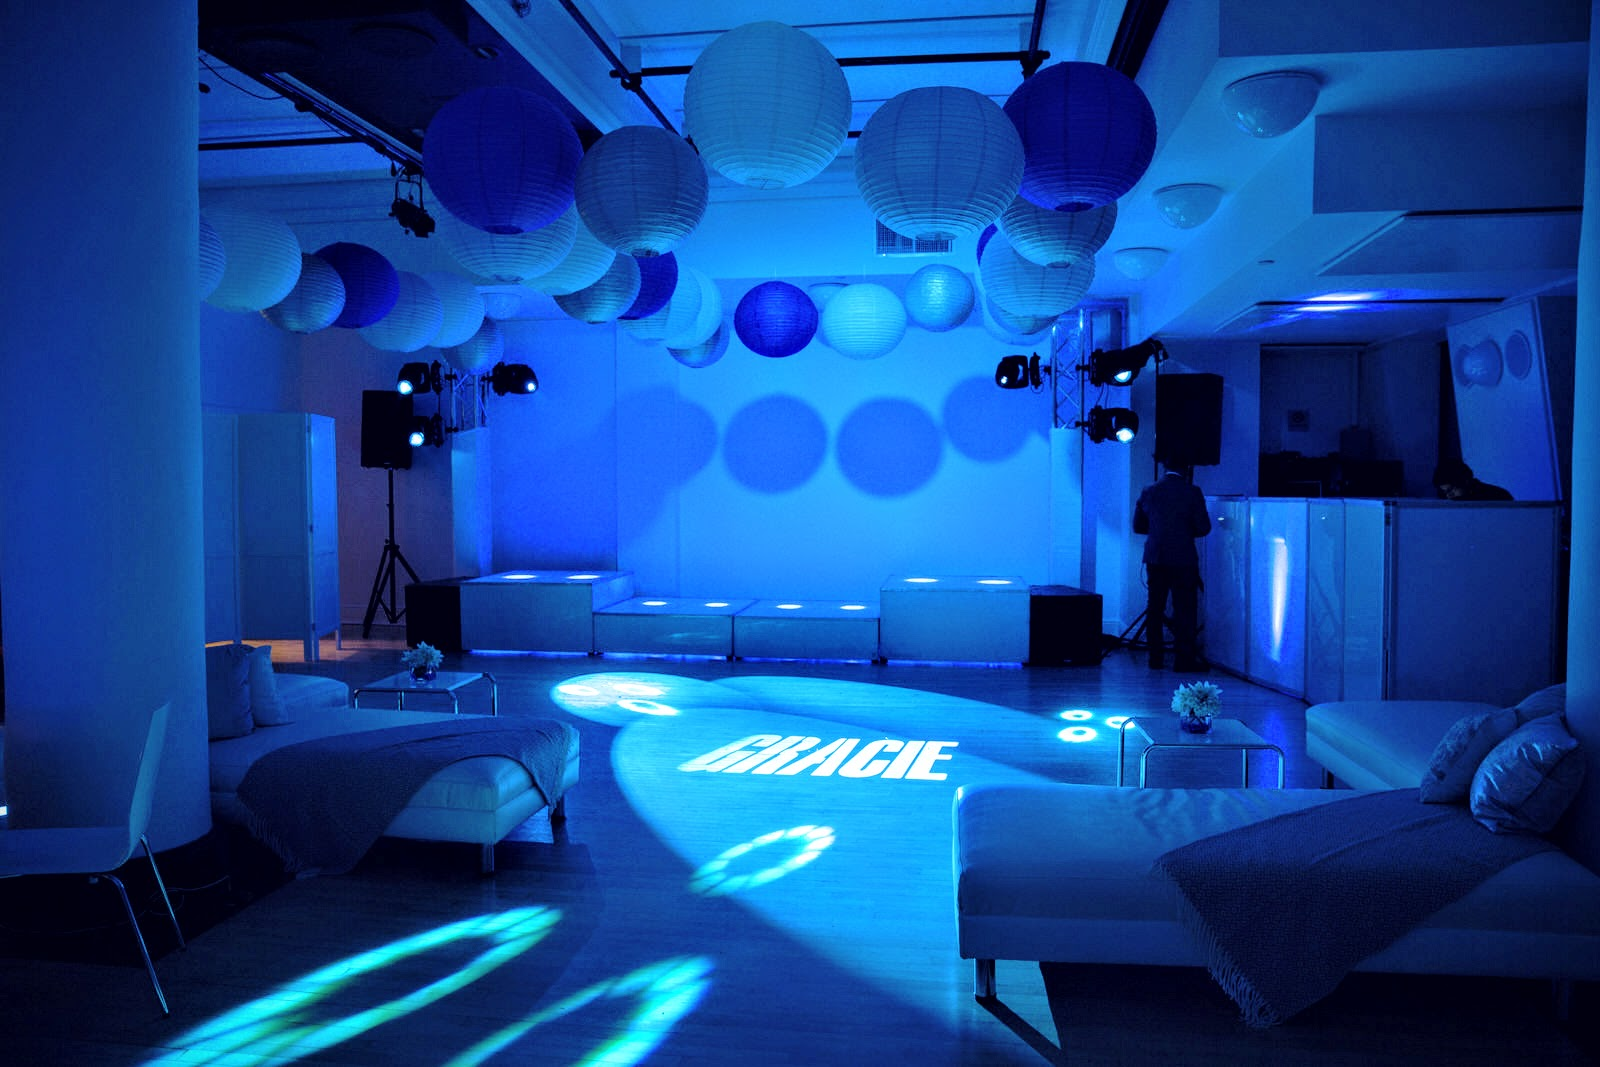 Bat Mitzvah Dance Floor w/ Hanging Lanterns